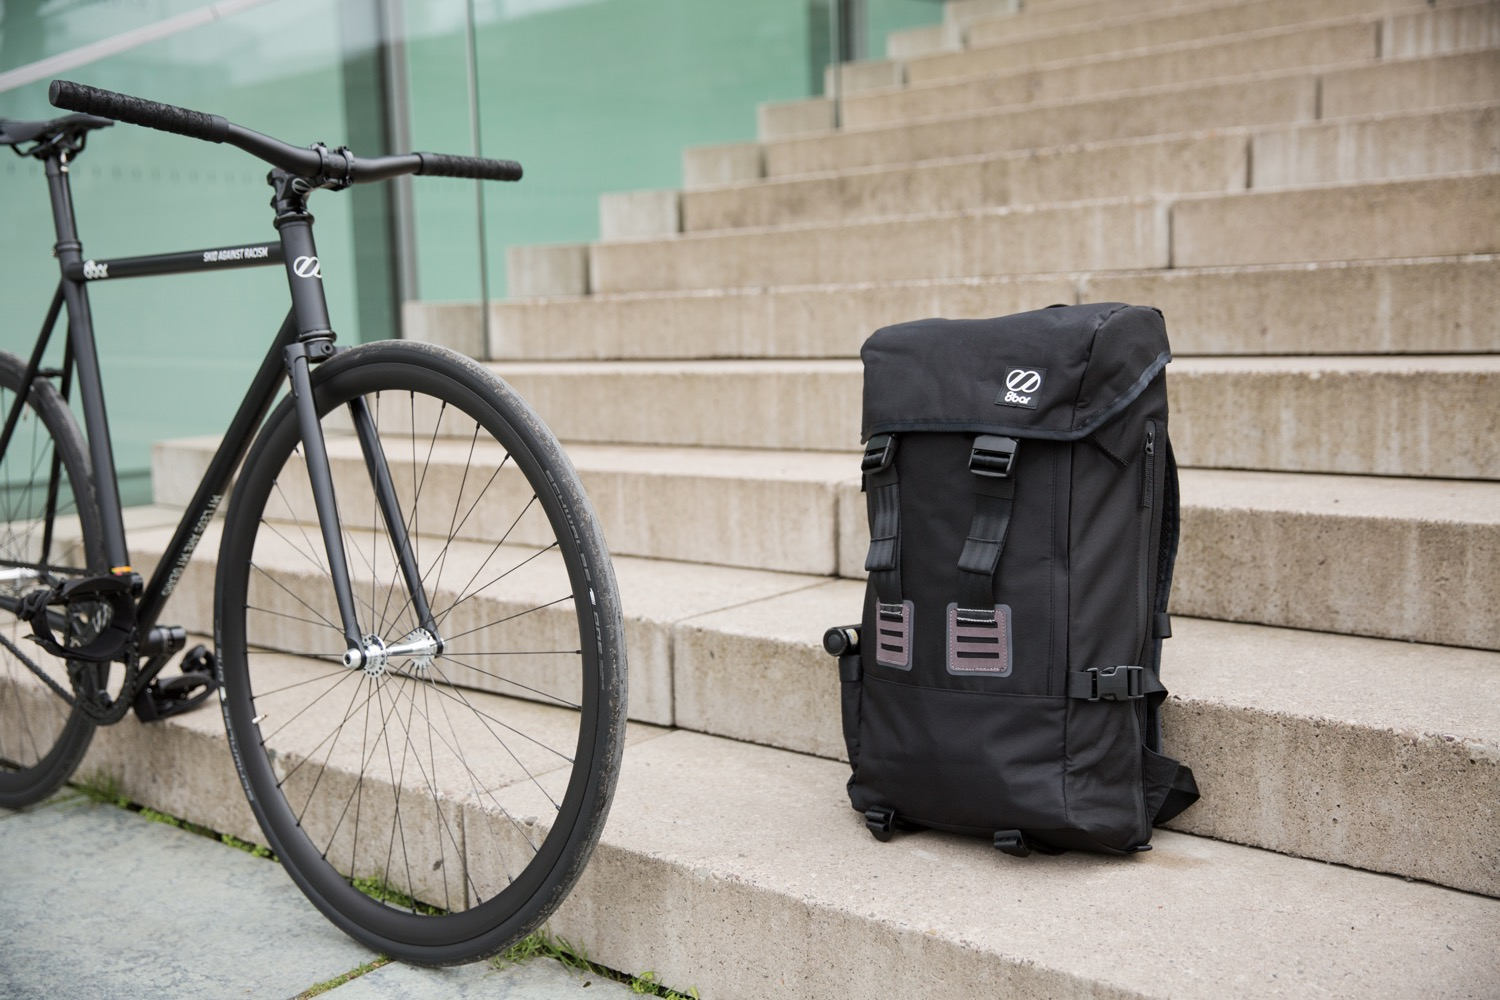 8bar-urban-backpack-city-bag-weekender-travel-bike-lr-20